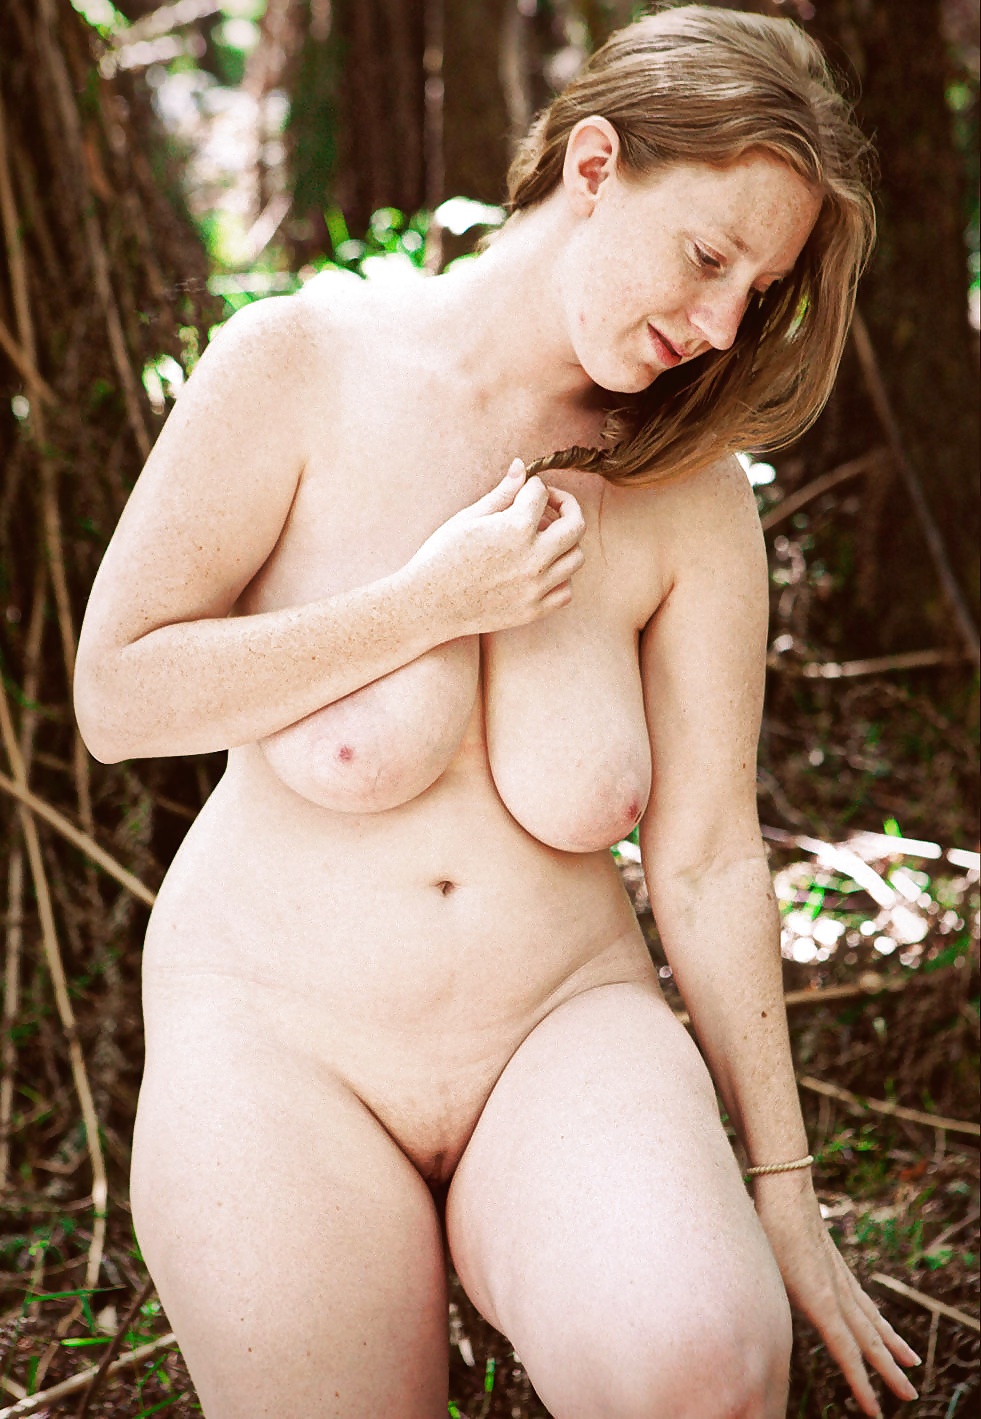 Nude fatty australian girl